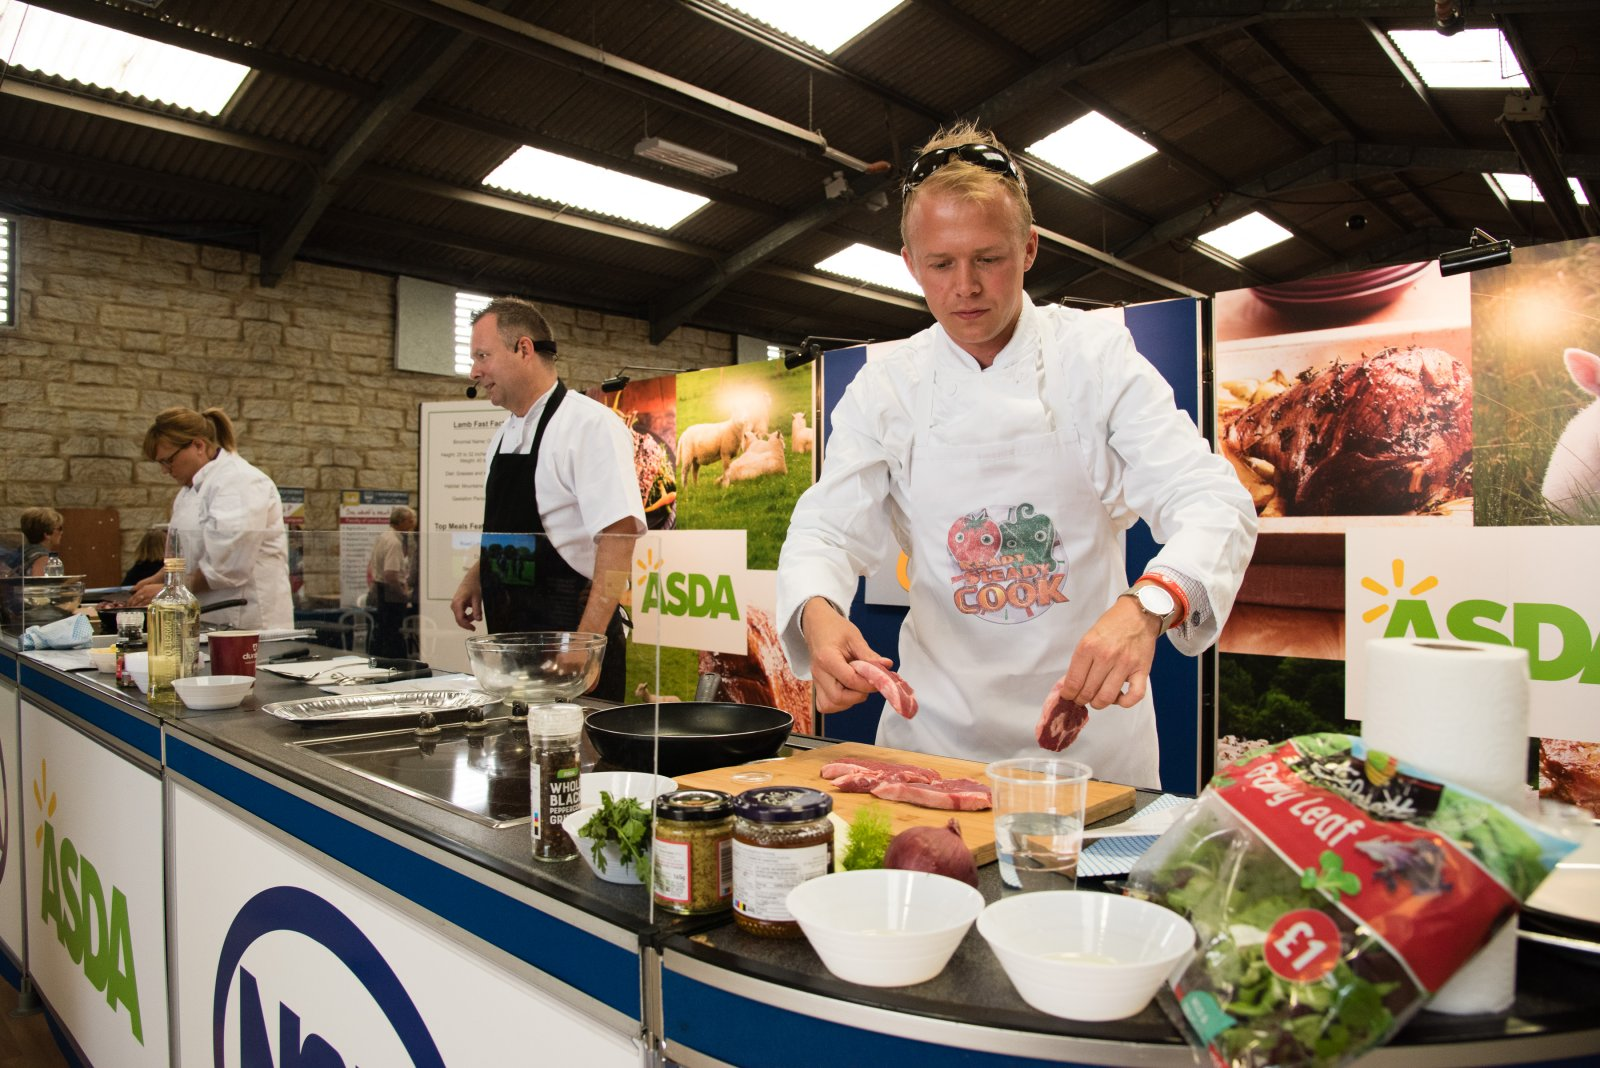 Competitors in the Ready Steady Cook competition